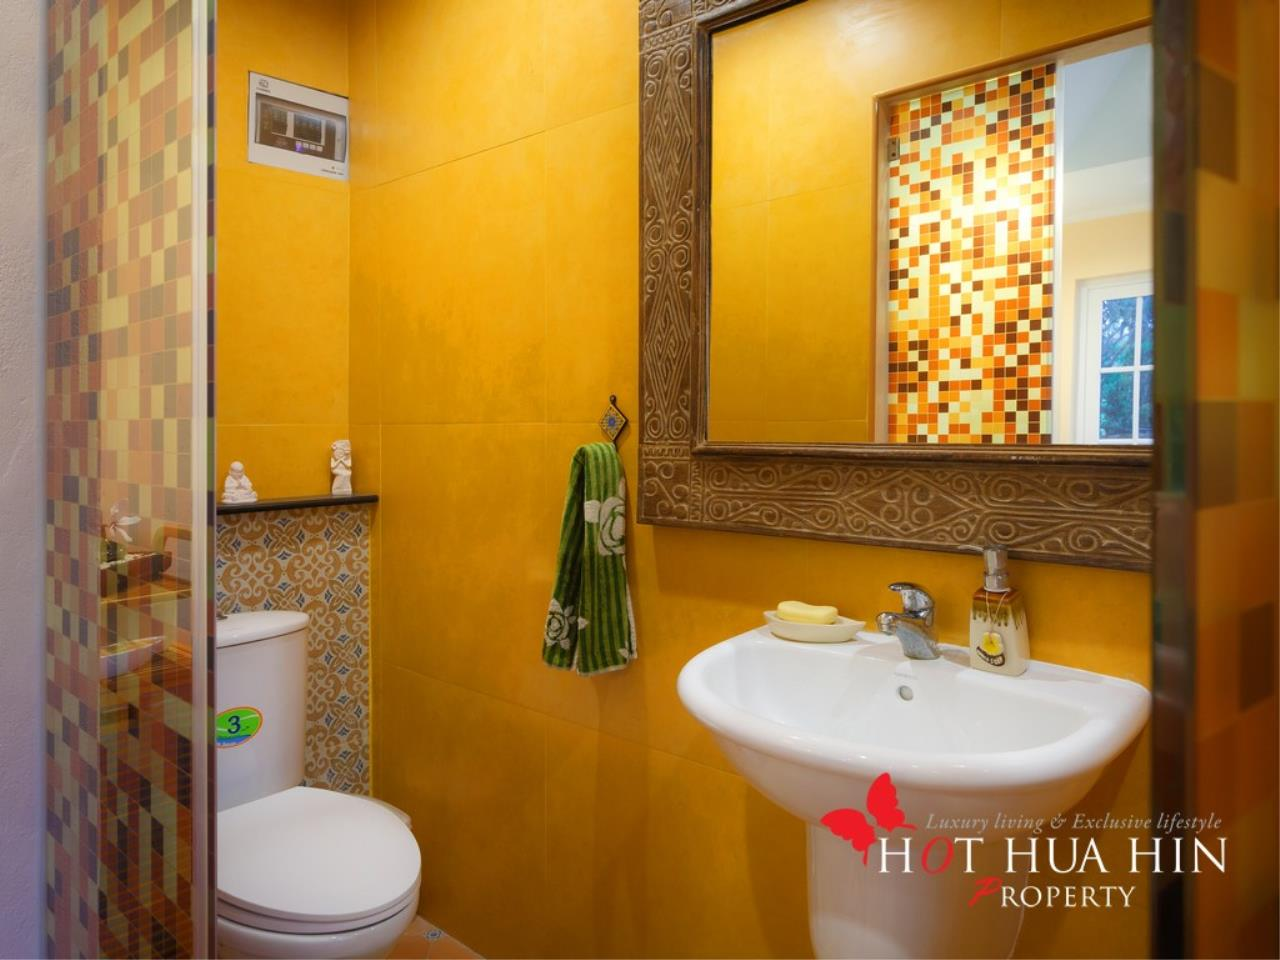 Hot Hua Hin Co. Ltd. Agency's Well Built Home With Stunning Gardens And Two Full Kitchens 27